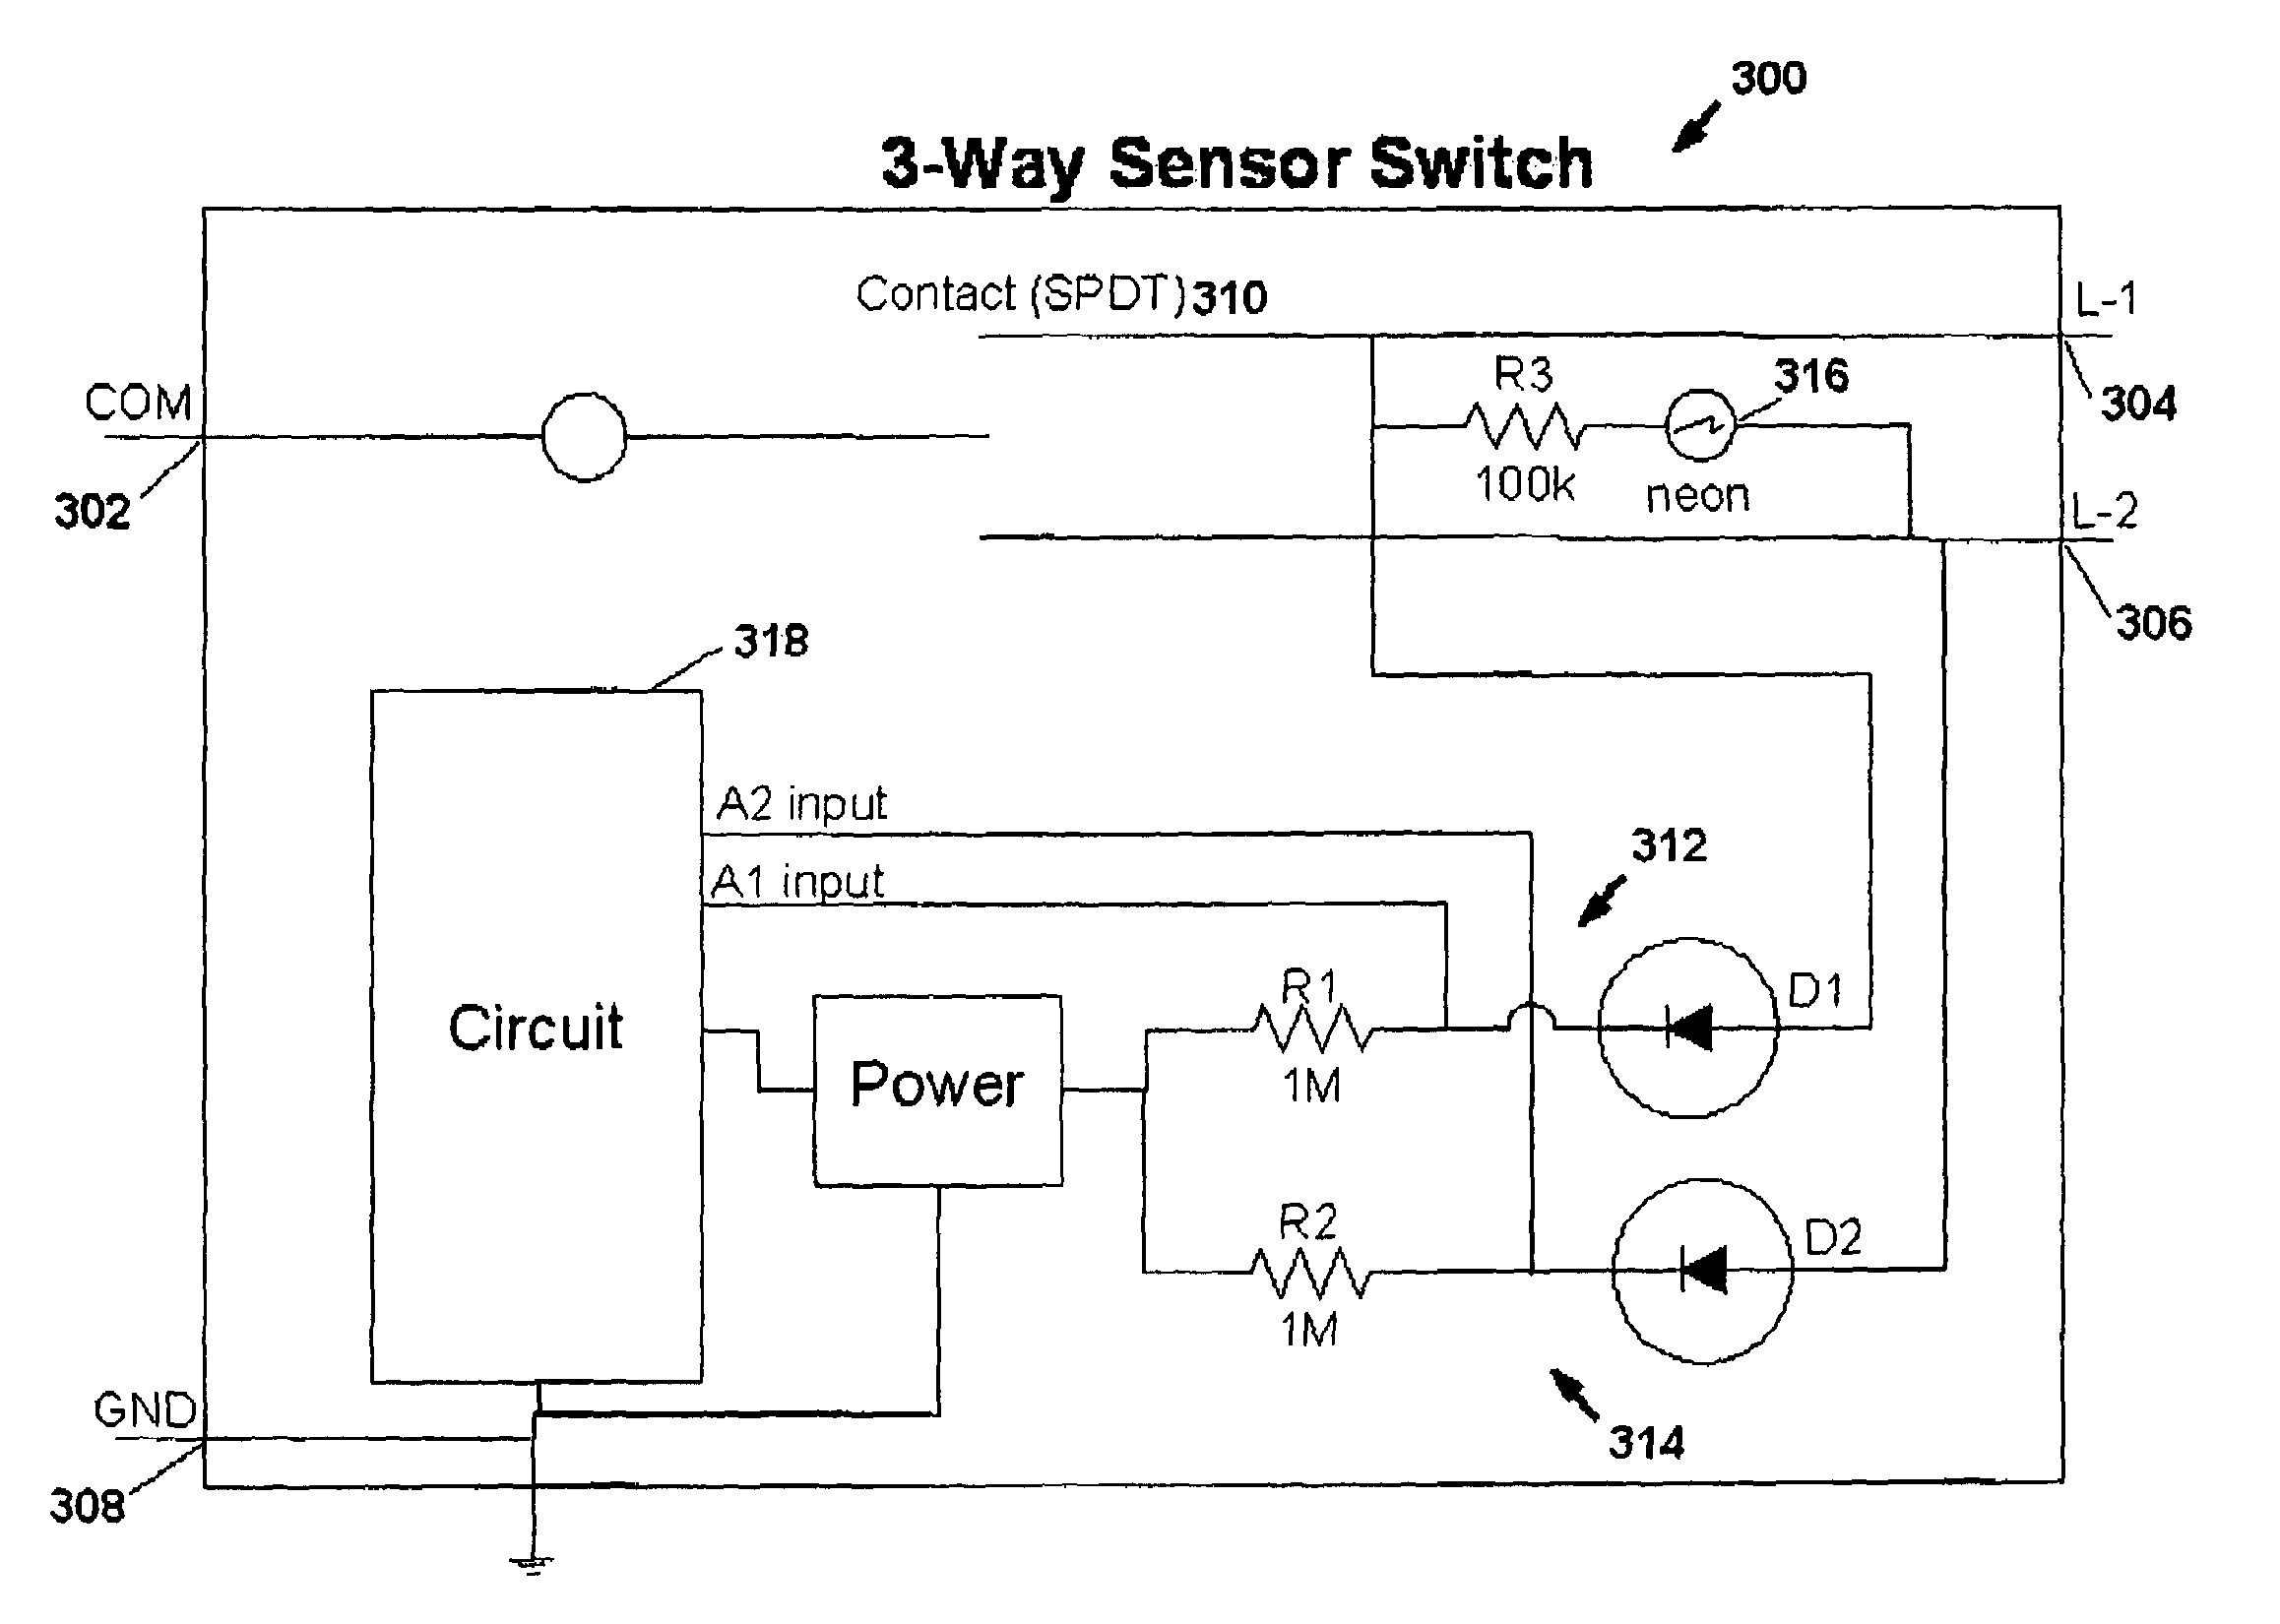 legrand 3 way switch wiring diagram legrand image patent us7791282 motion sensor switch for 3 way light circuit on legrand 3 way switch wiring